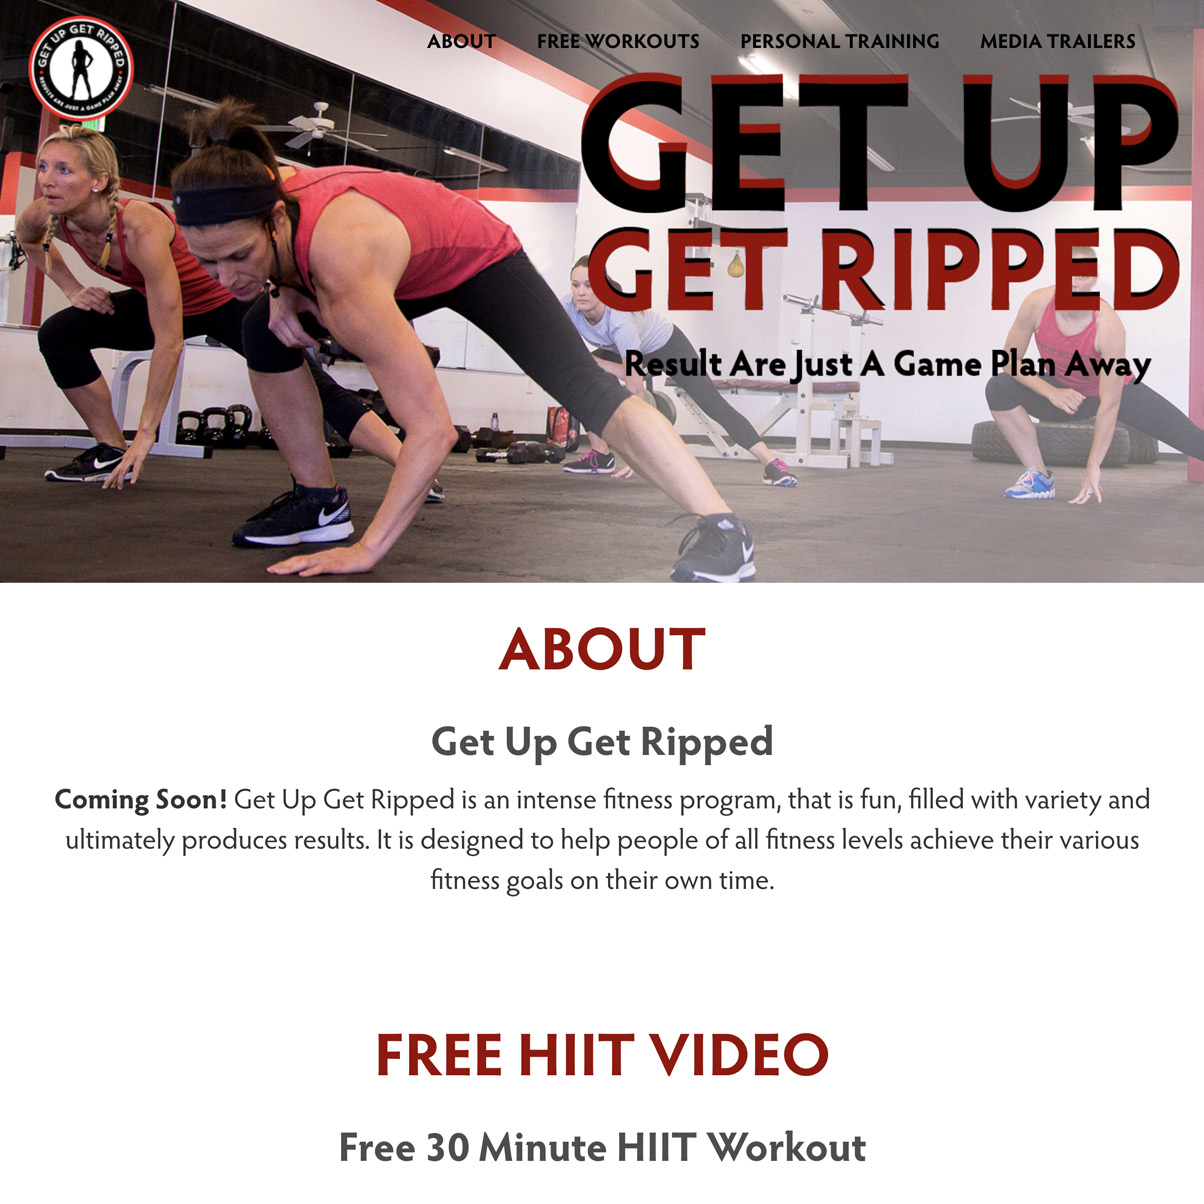 Get Up Get Ripped Home Page